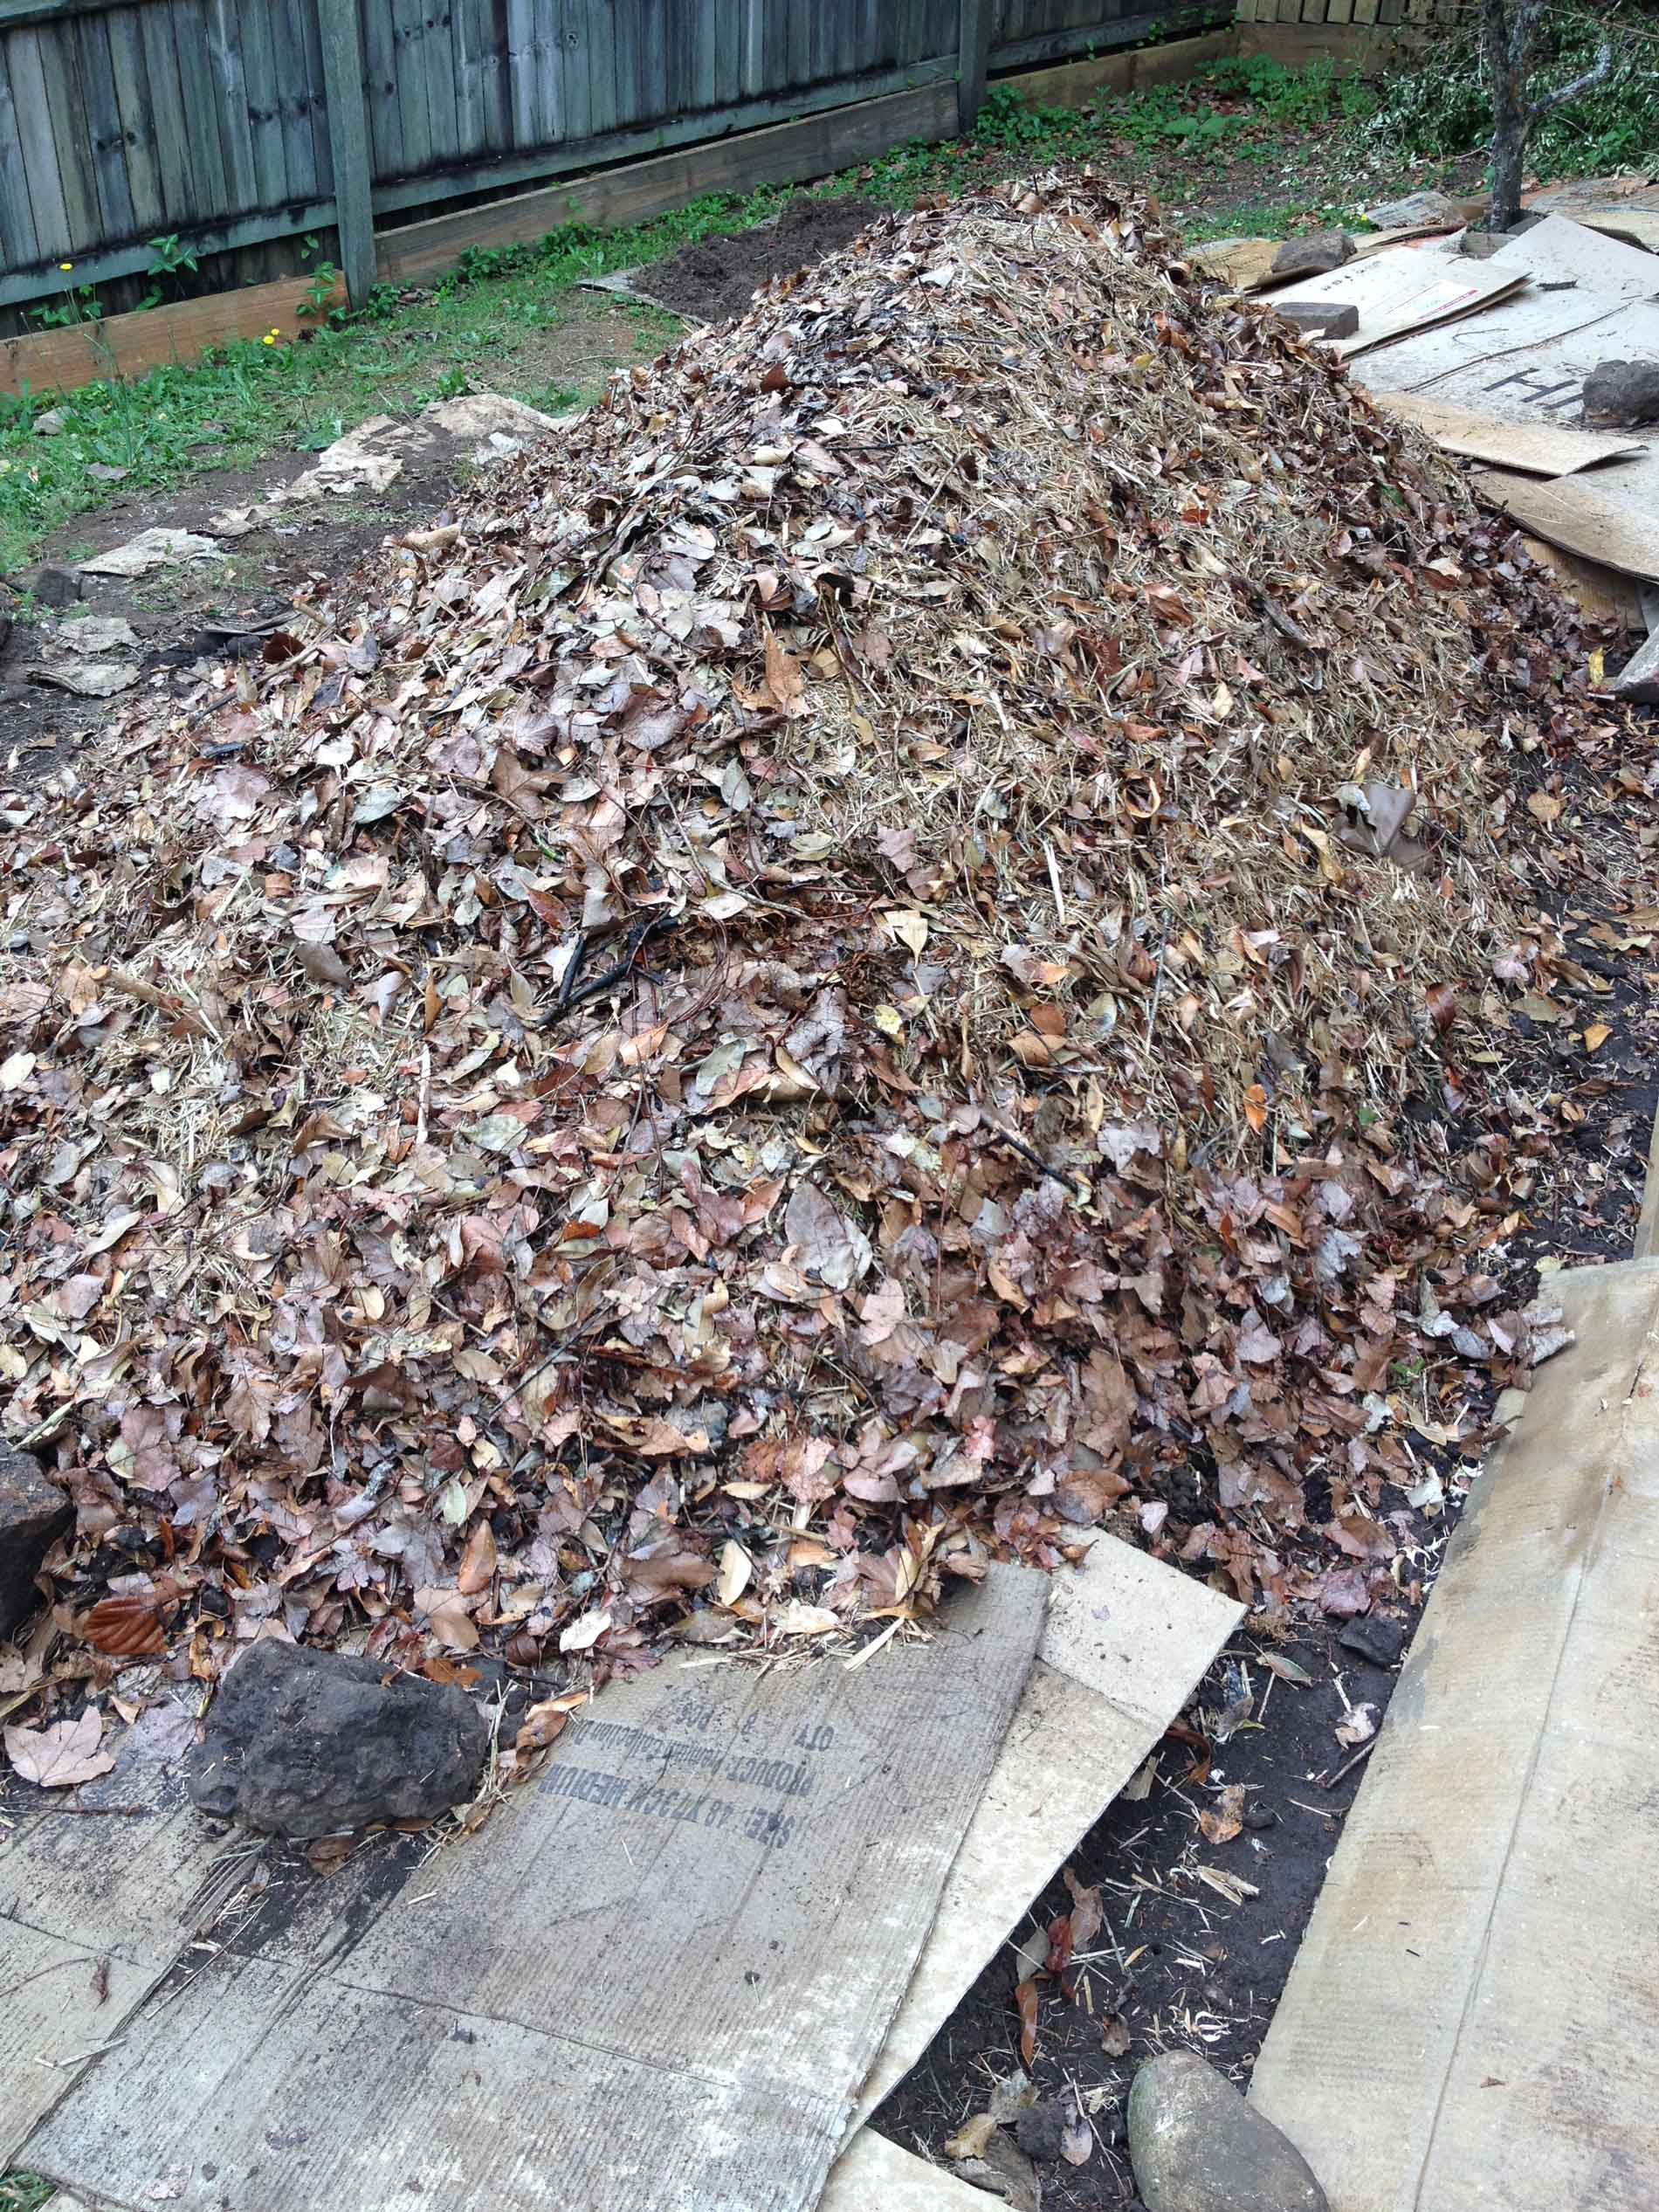 Leaf mulch added to mound, ready for planting.